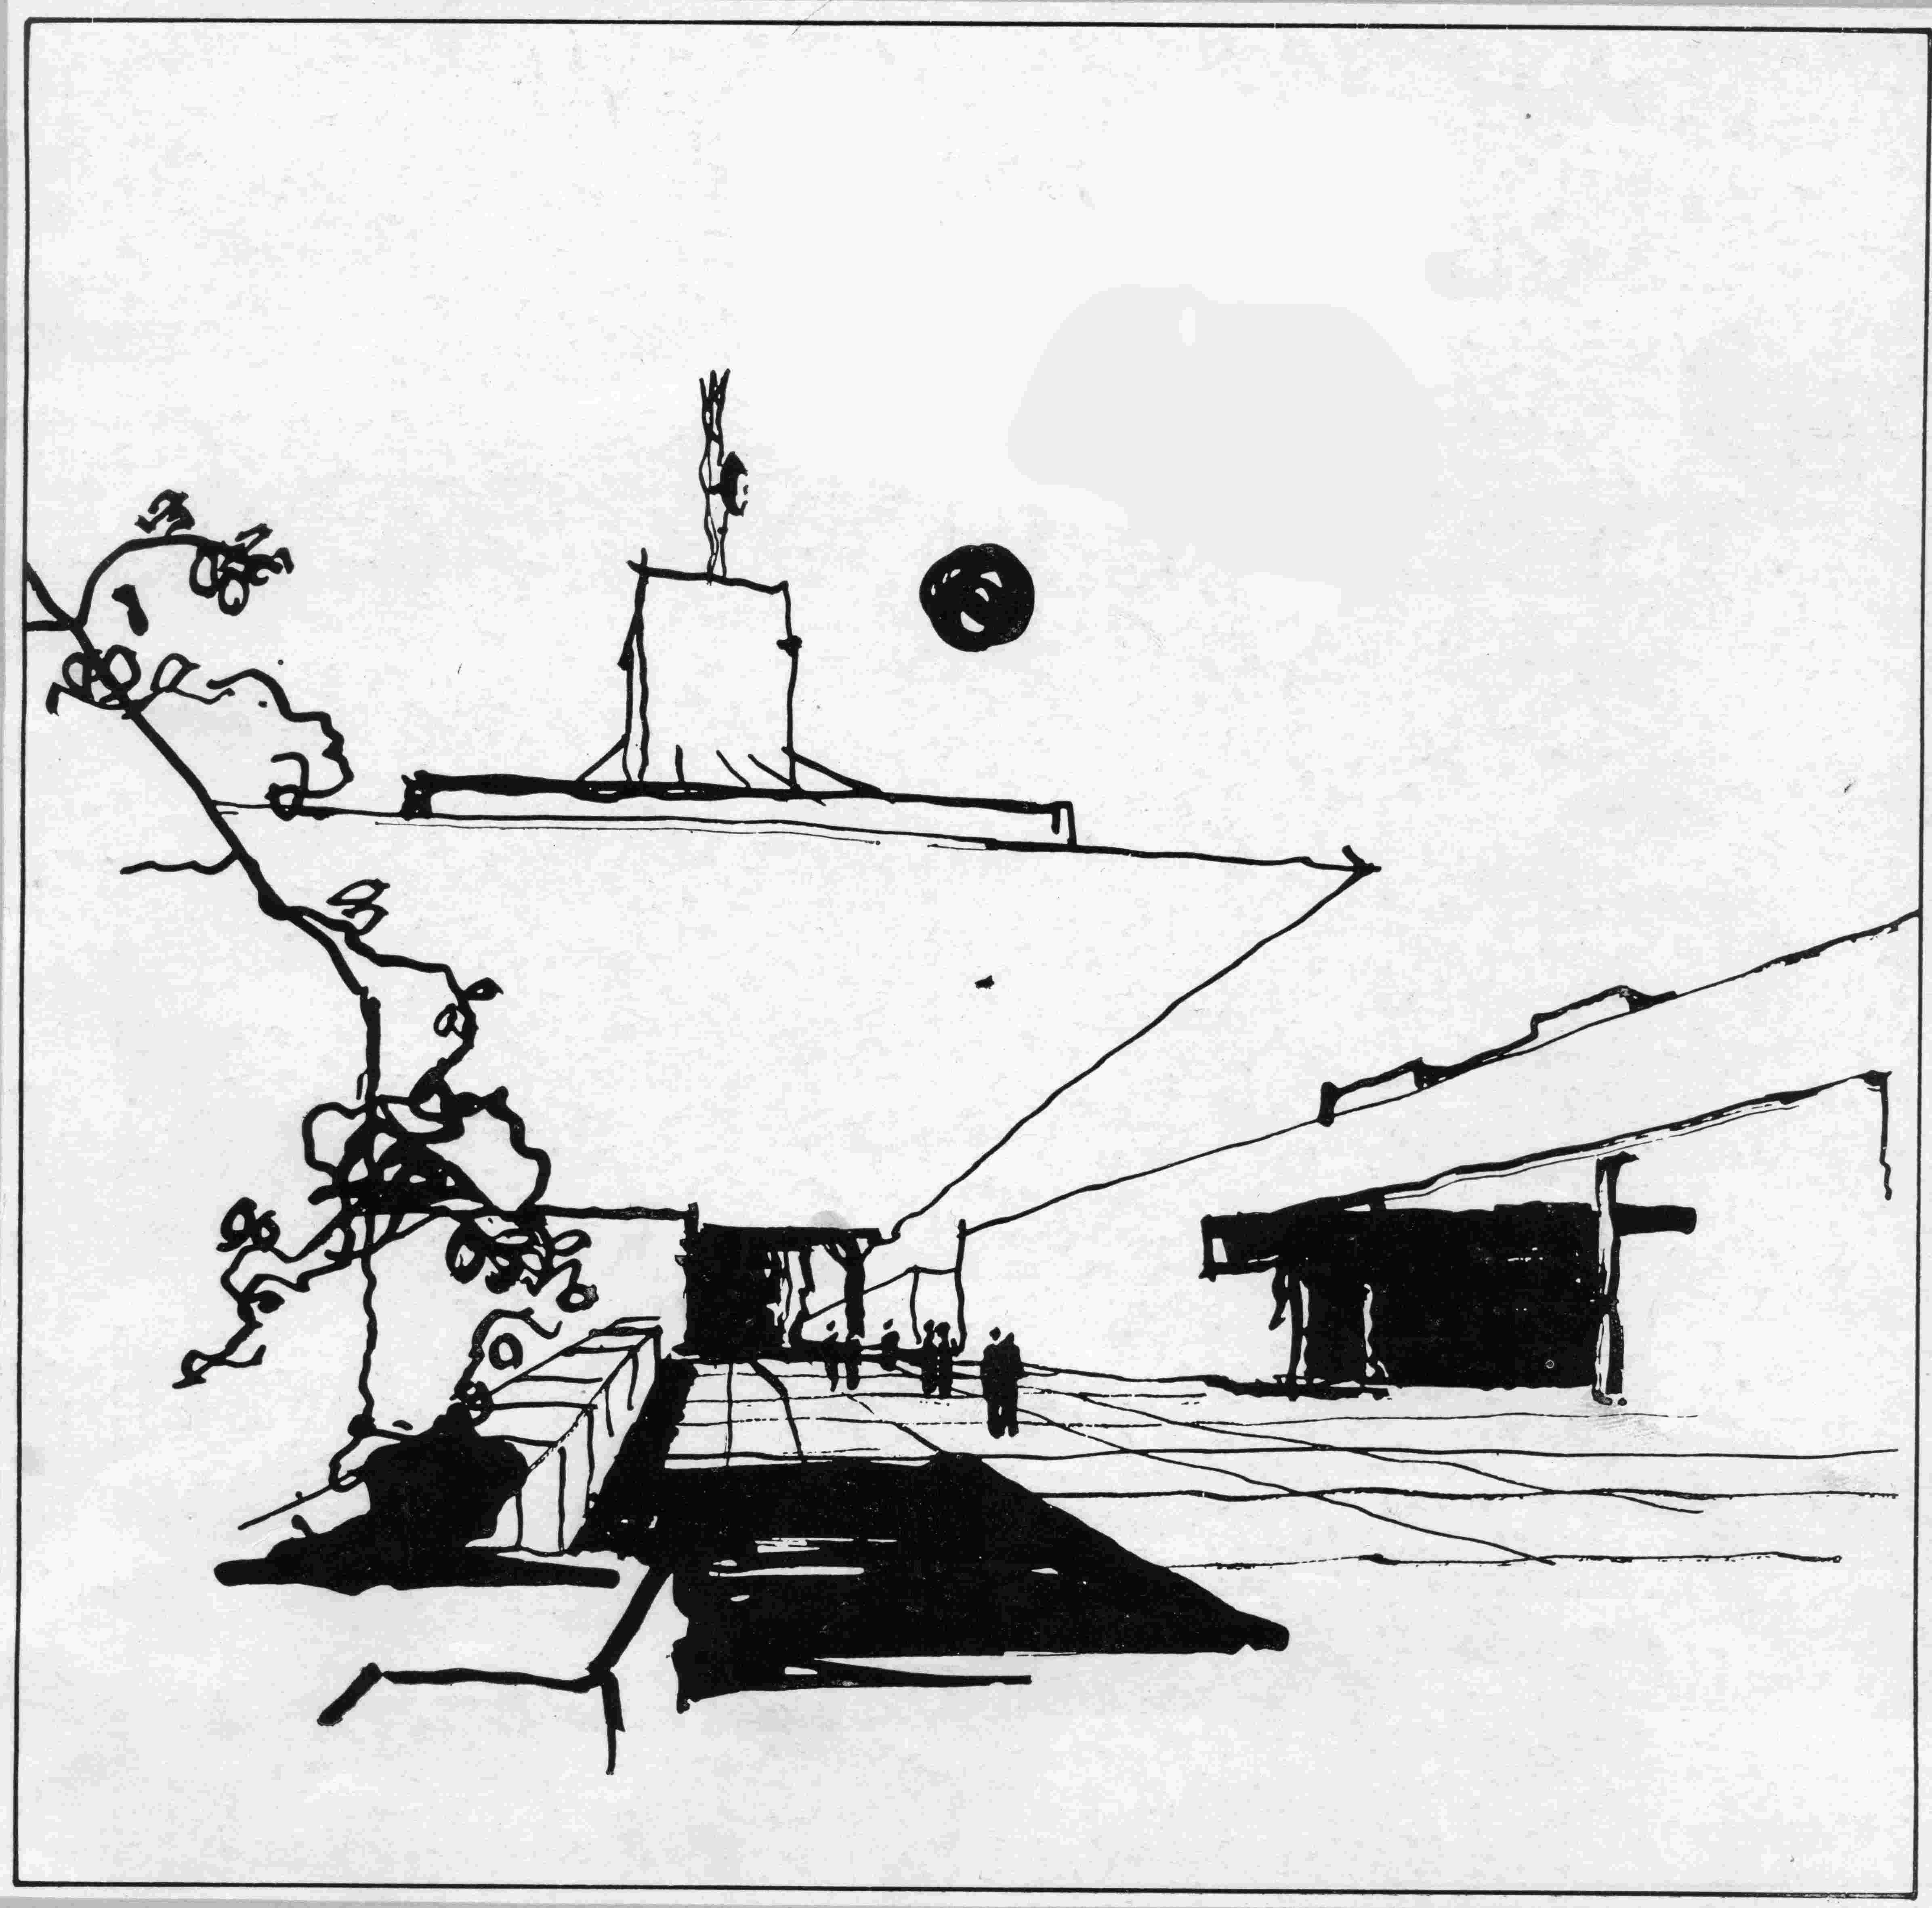 Politics At A Cold War Relic In Bratislava Uncube Building Radio Station Sketch Circa 1969 Of The Proposed National Image Courtesy